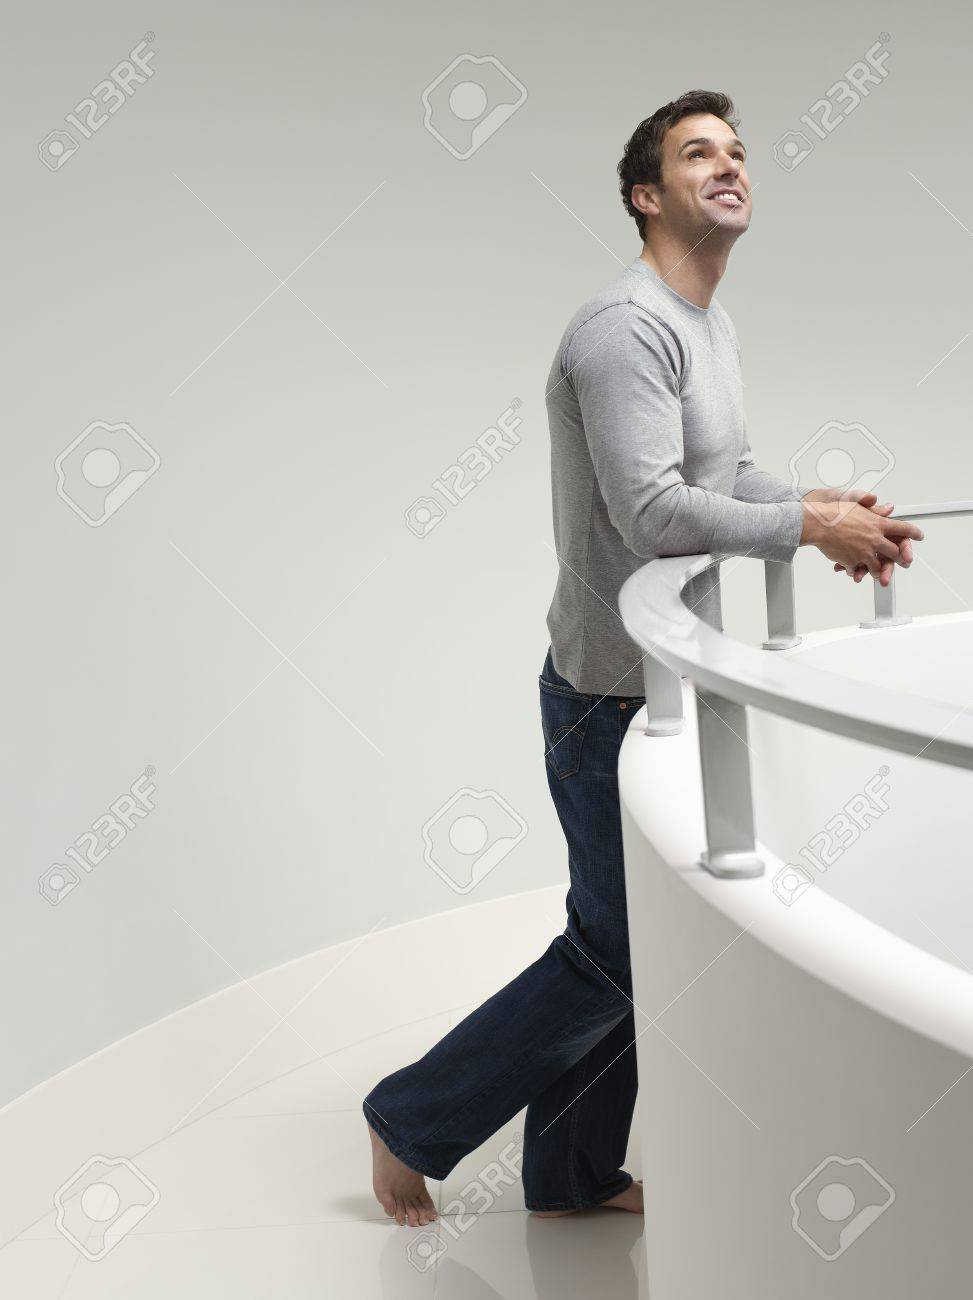 young man leaning on railing indoors looking up stock photo picture